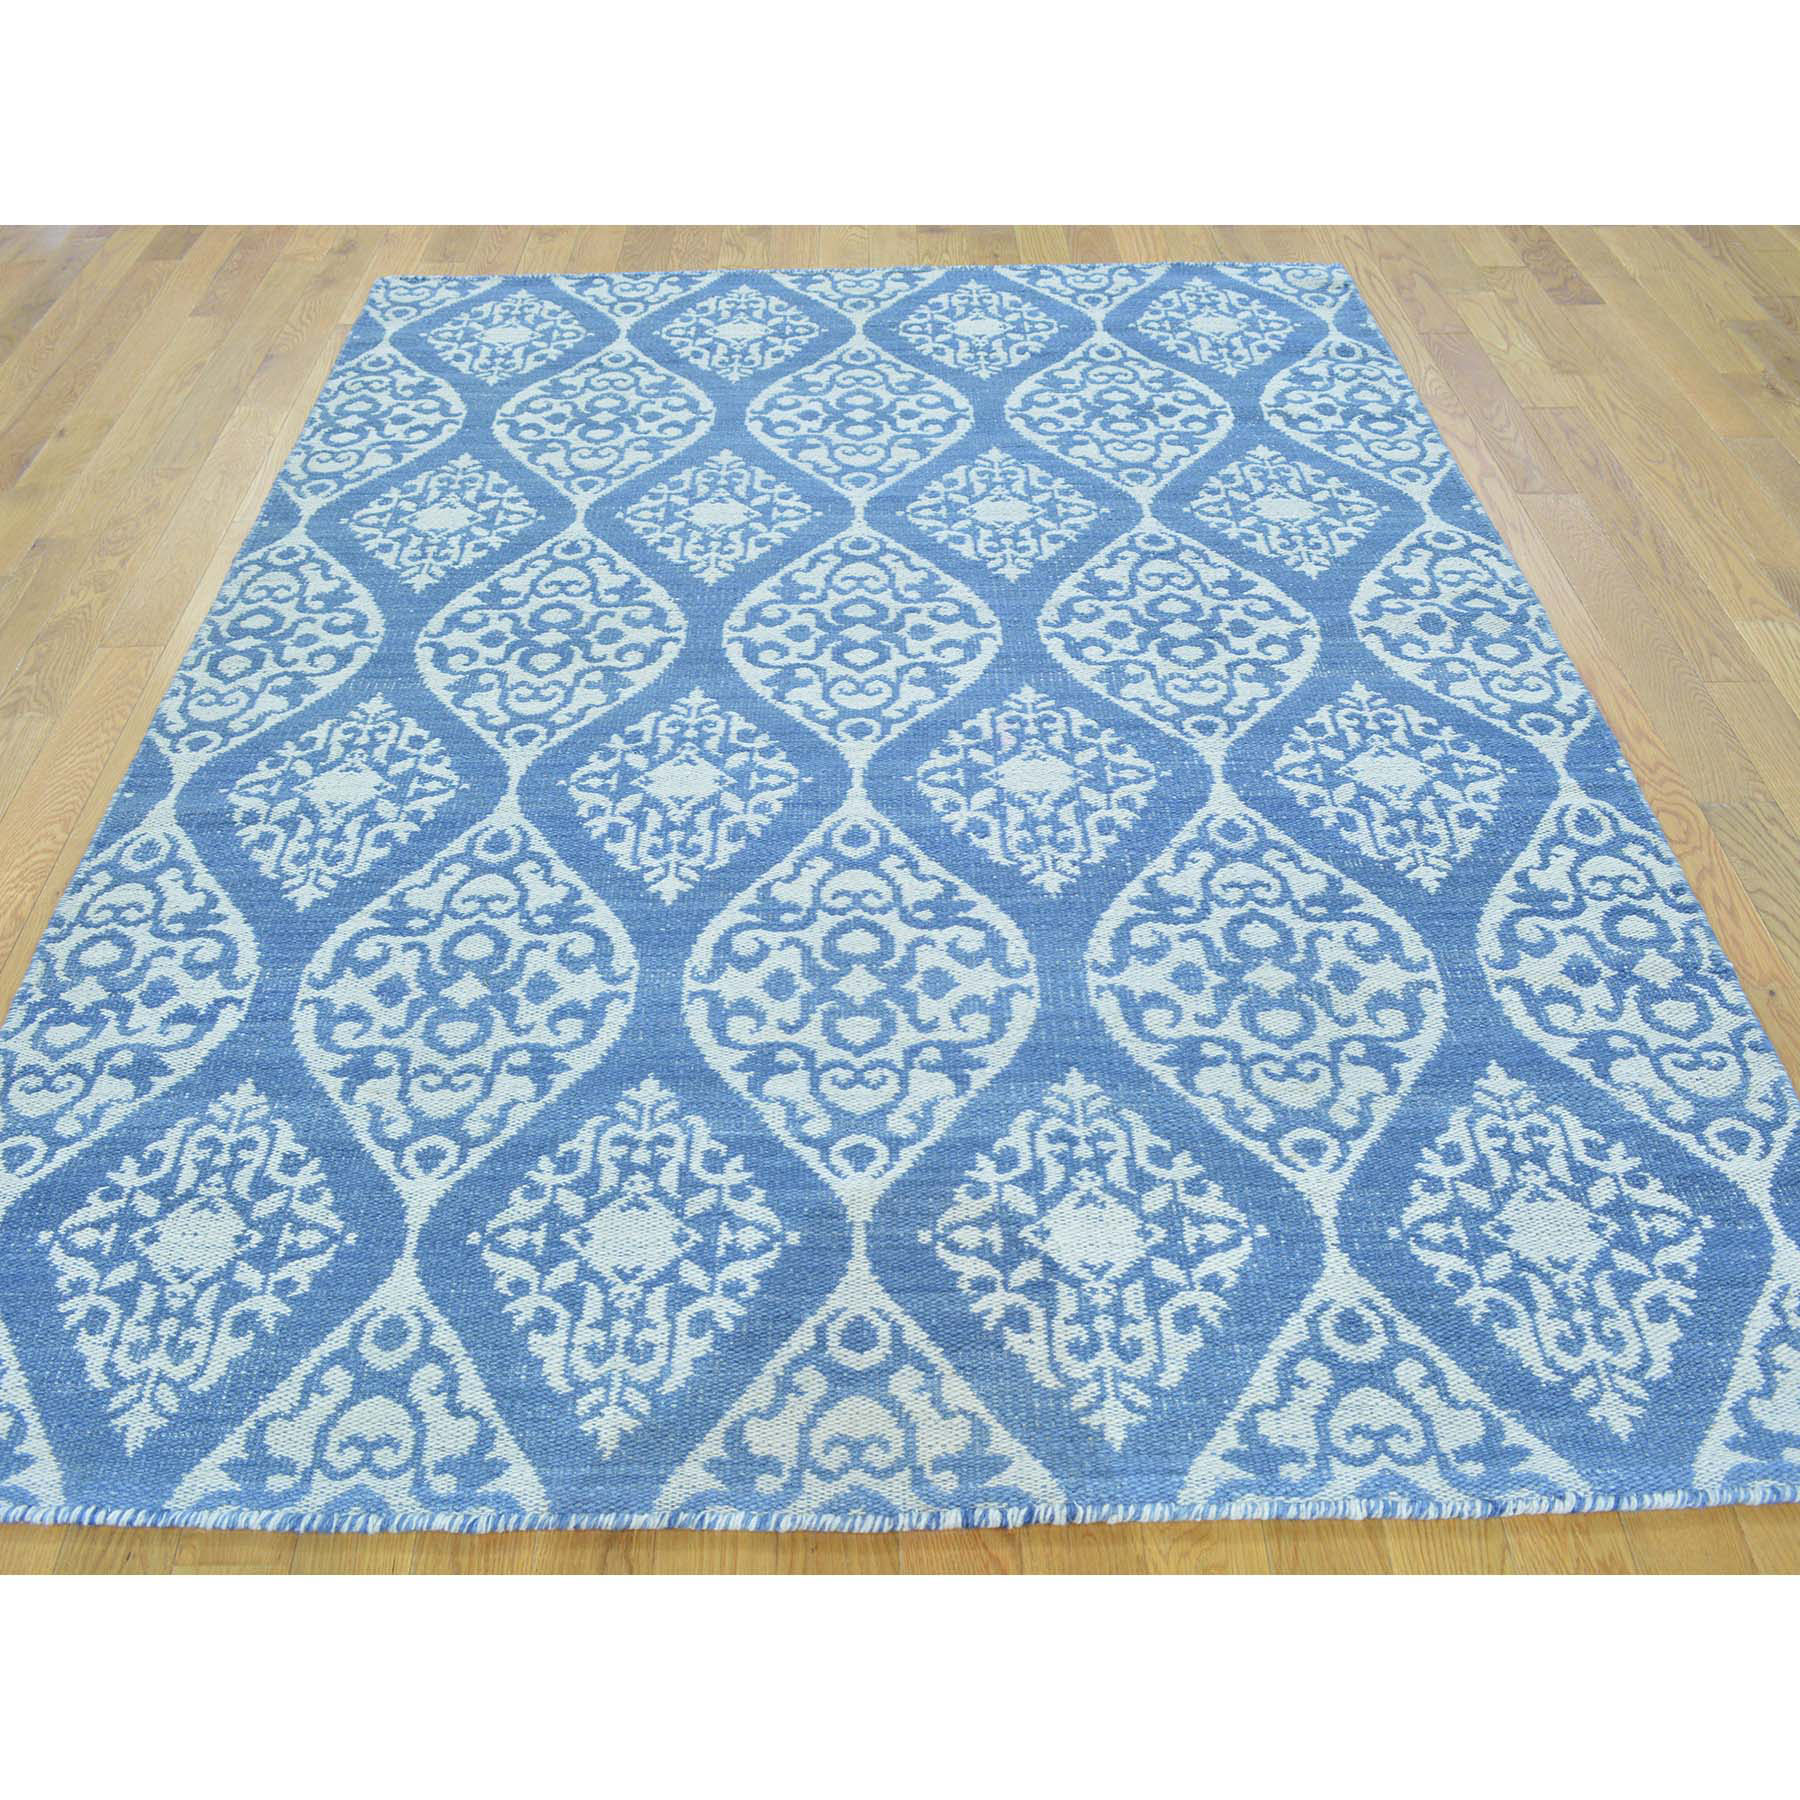 5-2 x6-10  Flat Weave Hand Woven Reversible Kilim Rug